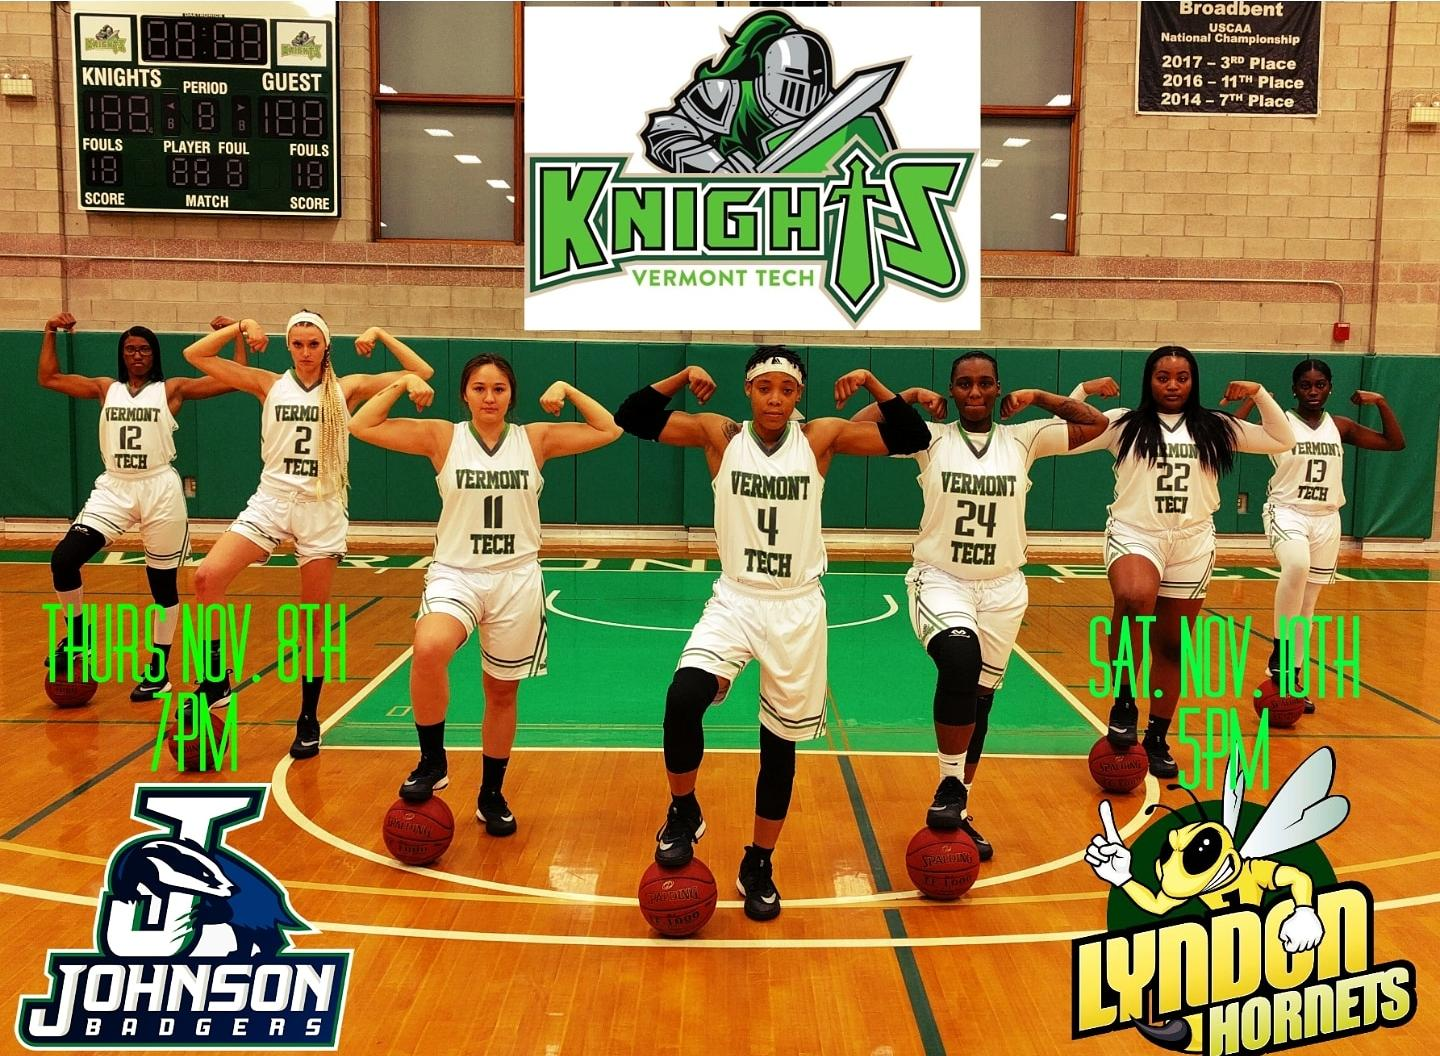 Lady Knights hold on to beat NVU-Johnson 81-72  at the Northern Vermont University Classic.